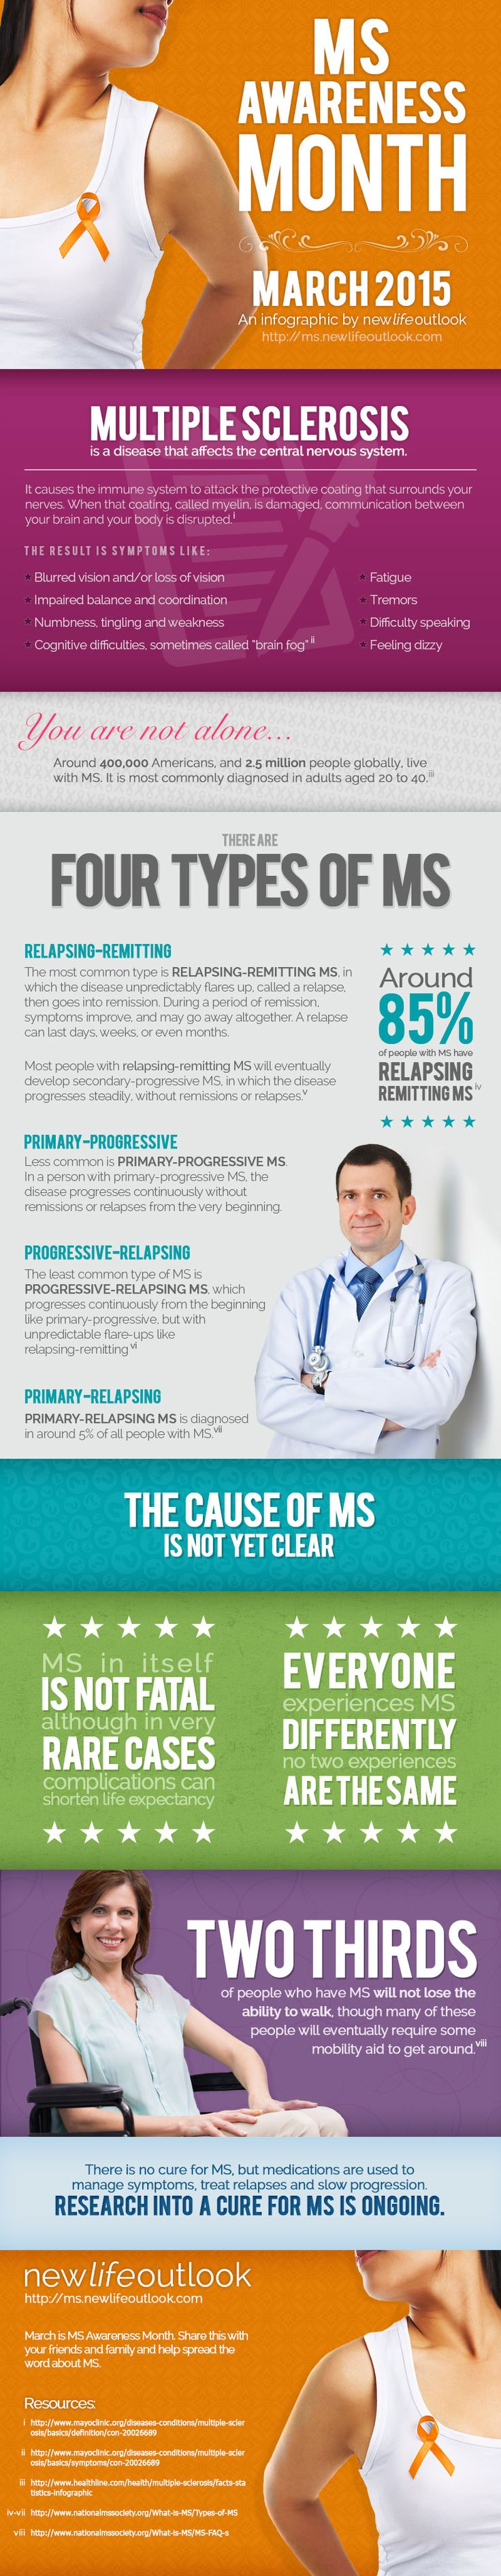 March is MS Awareness Month – the perfect opportunity to teach everyone you know about MS. Start by sending them this infographic outlining the basics.